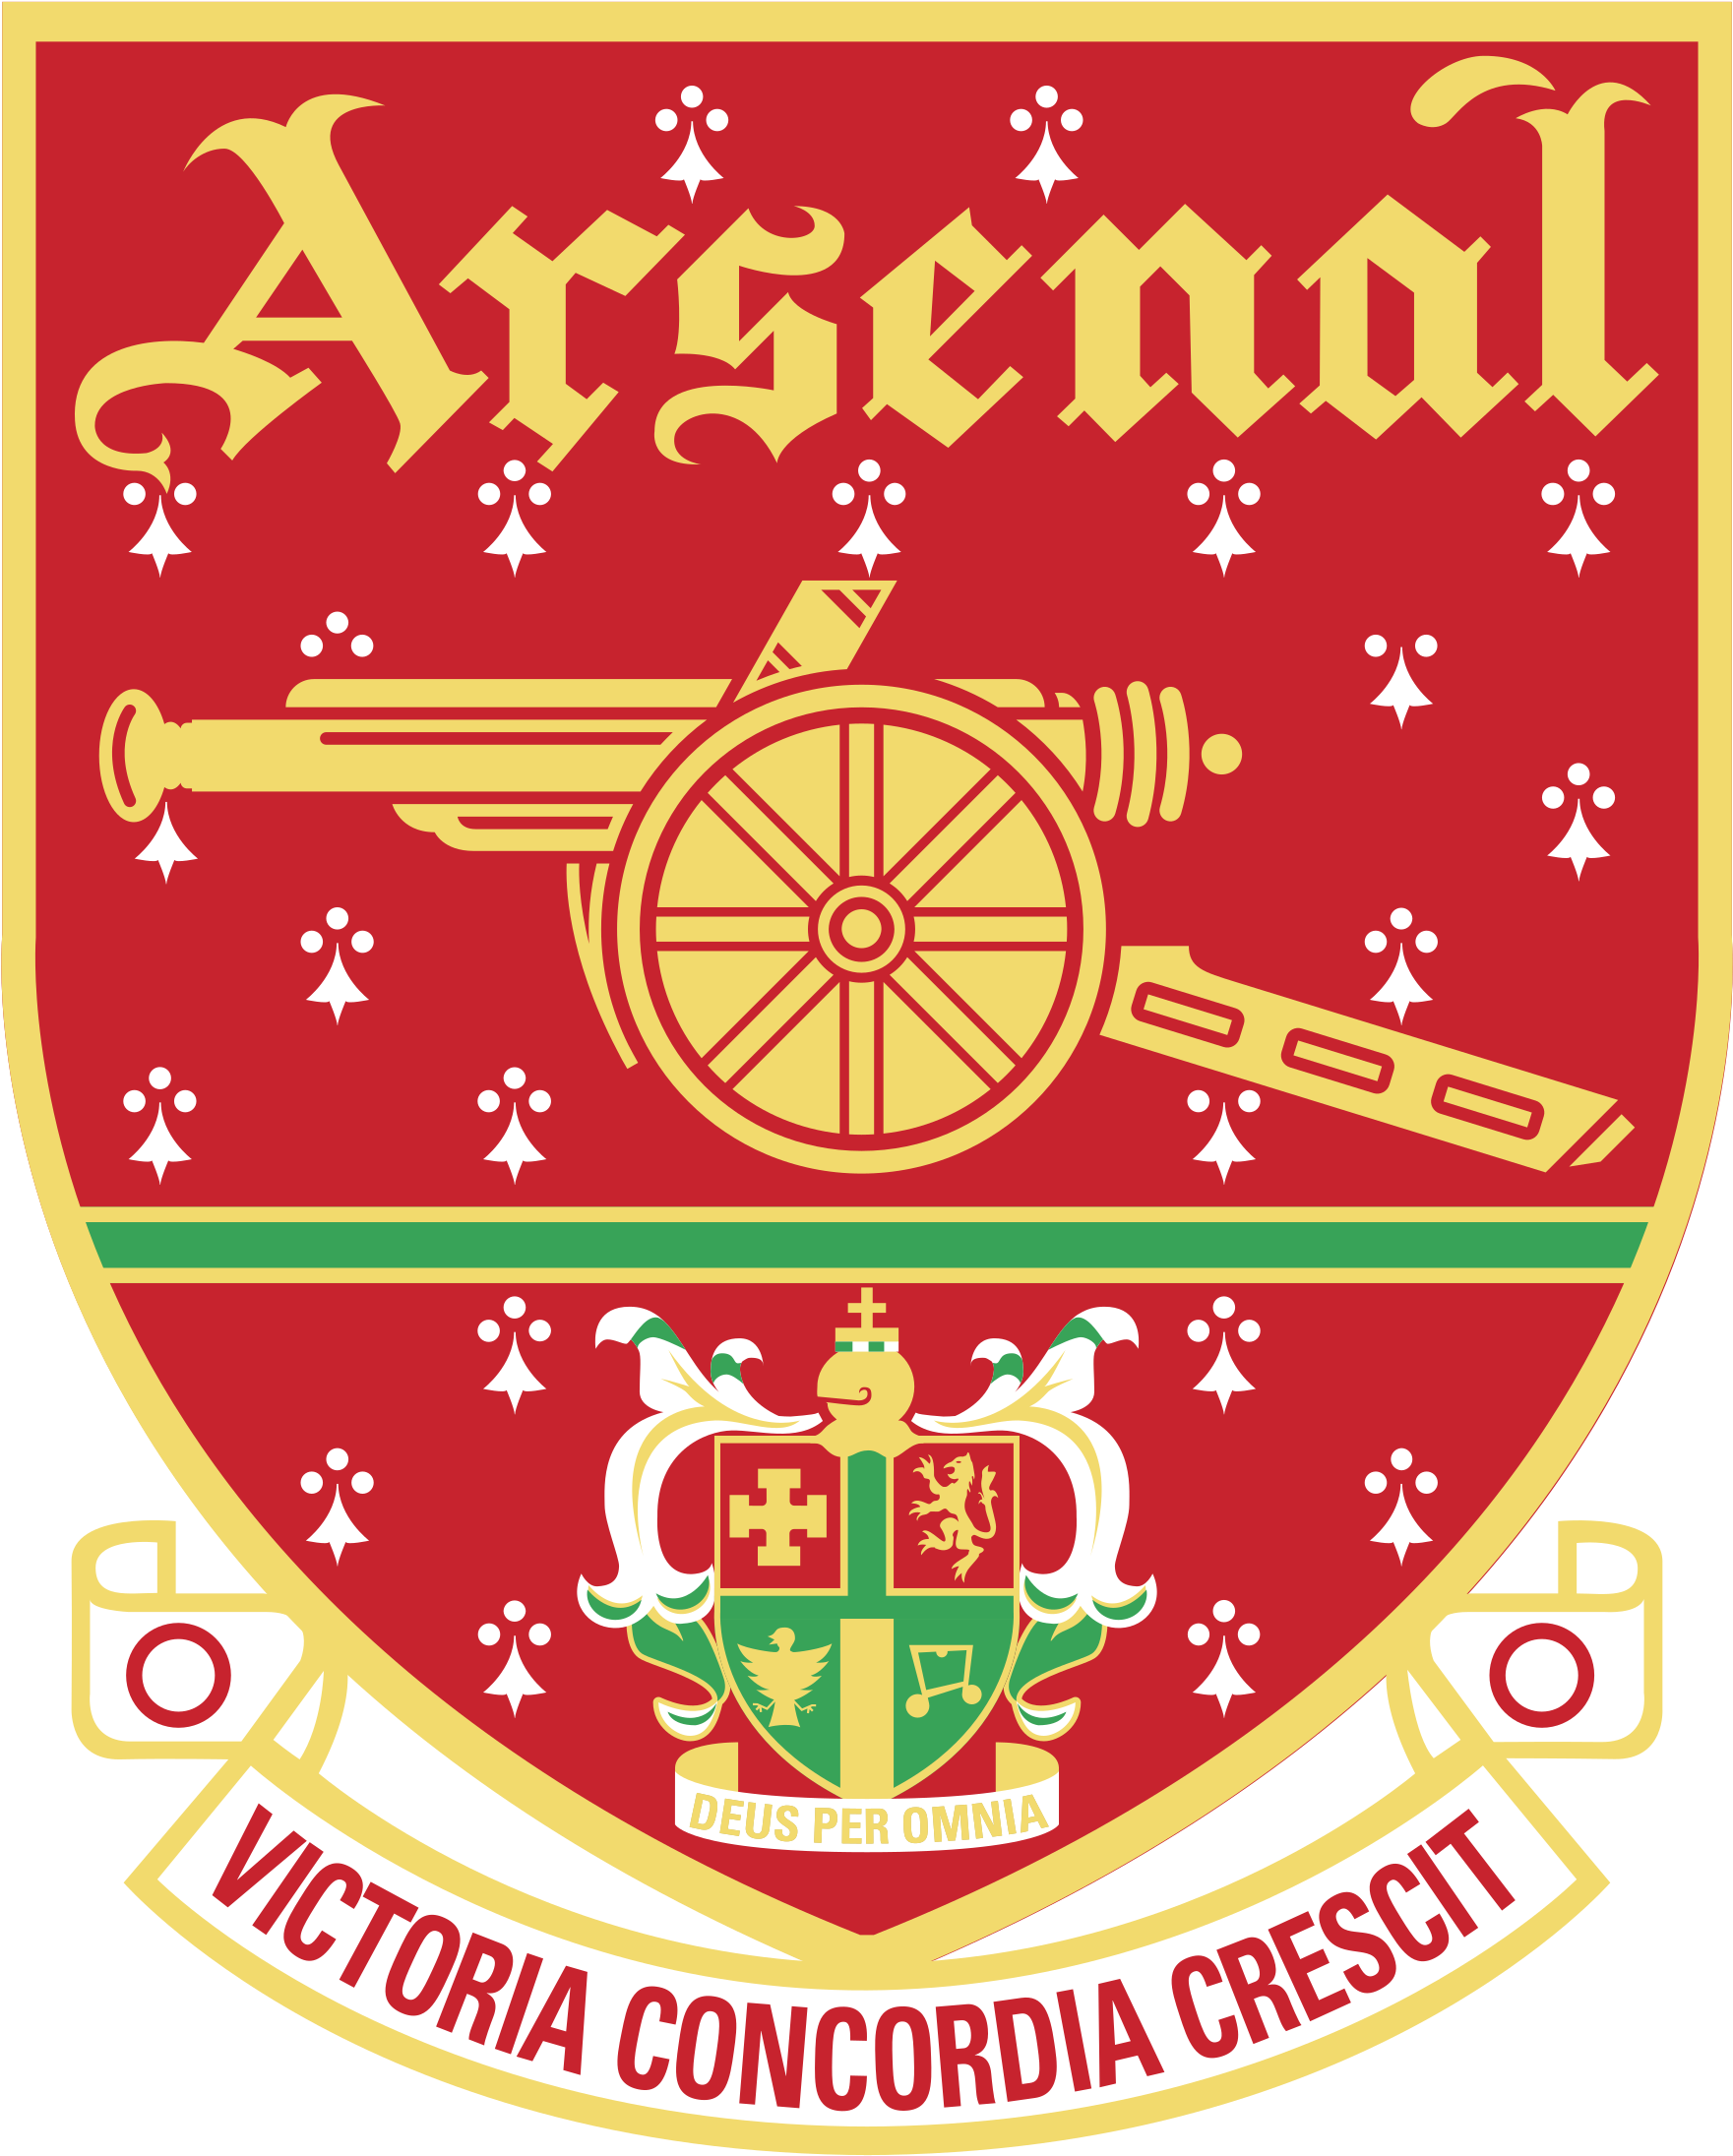 Download Arsenal Logo Png Transparent Arsenal Logo Full Size Png Image Pngkit